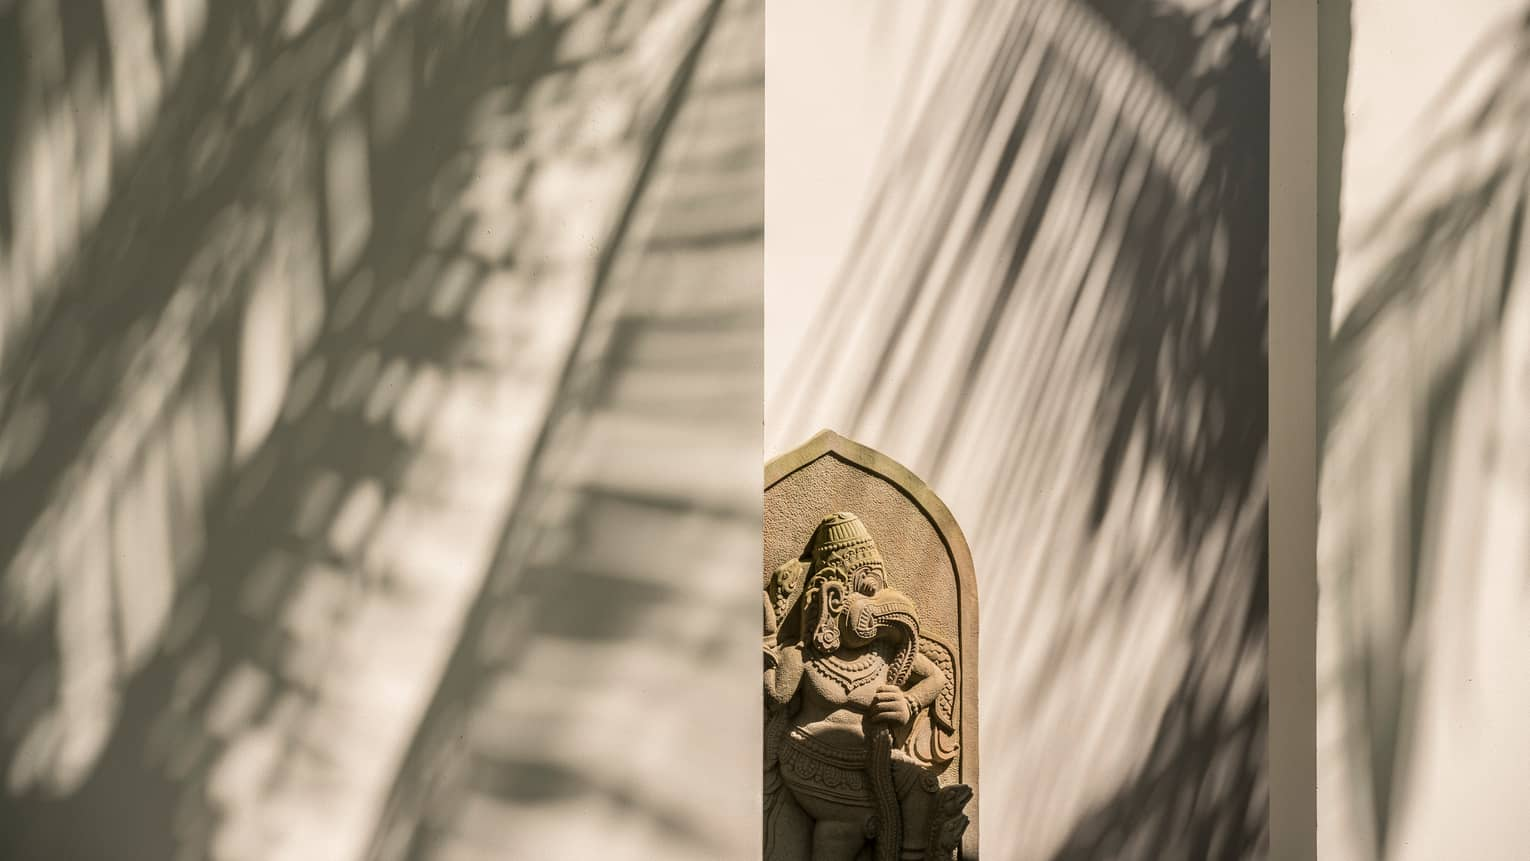 Stone carving on outdoor wall with shadows of palm fronds